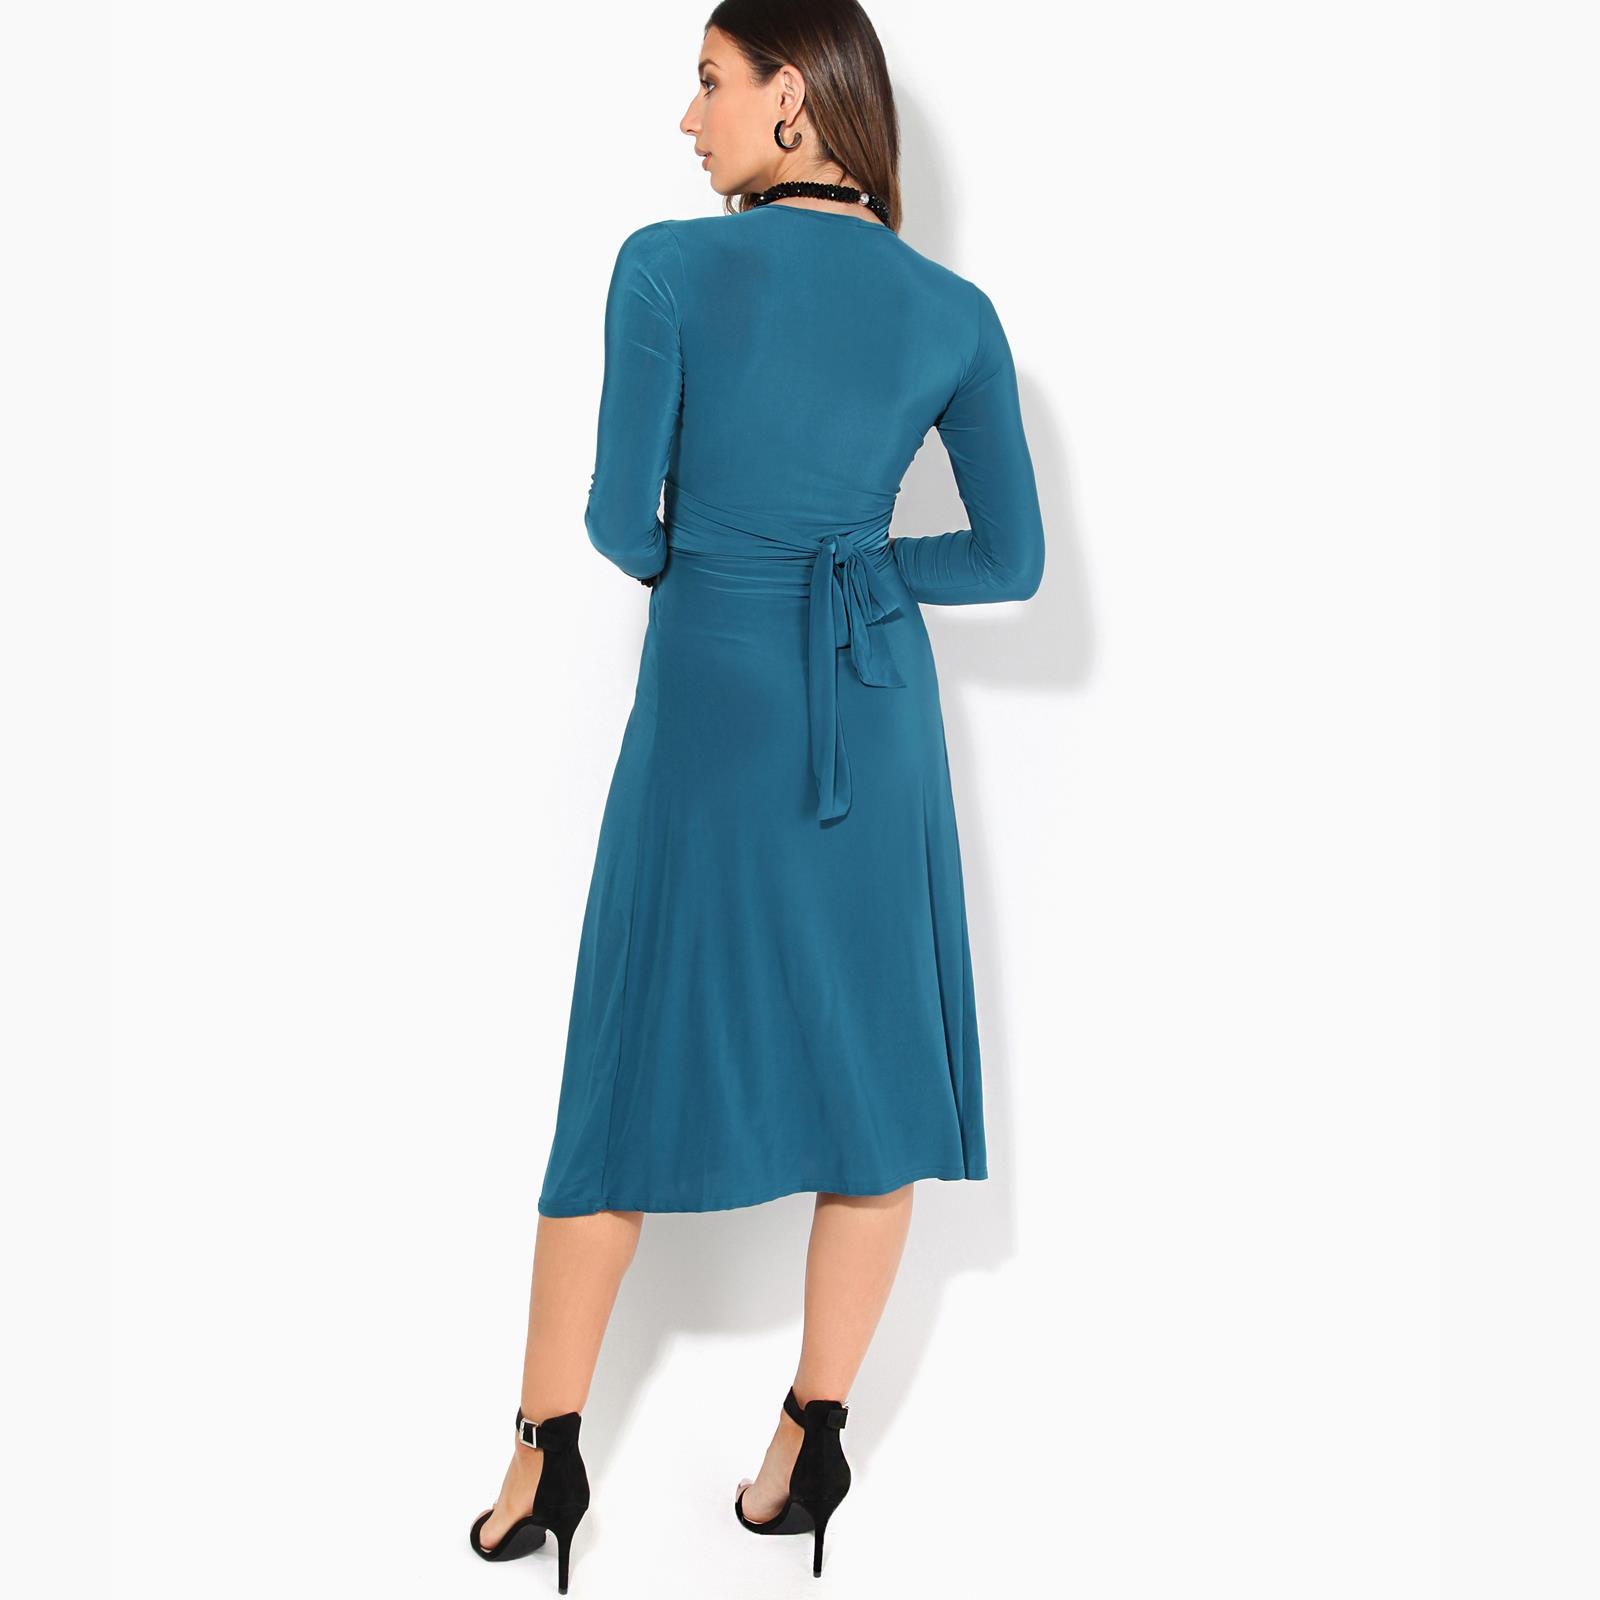 Women-Ladies-V-Neck-Midi-Dress-Knee-Long-A-Line-Skirt-3-4-Sleeve-Knot-Party-Work thumbnail 13